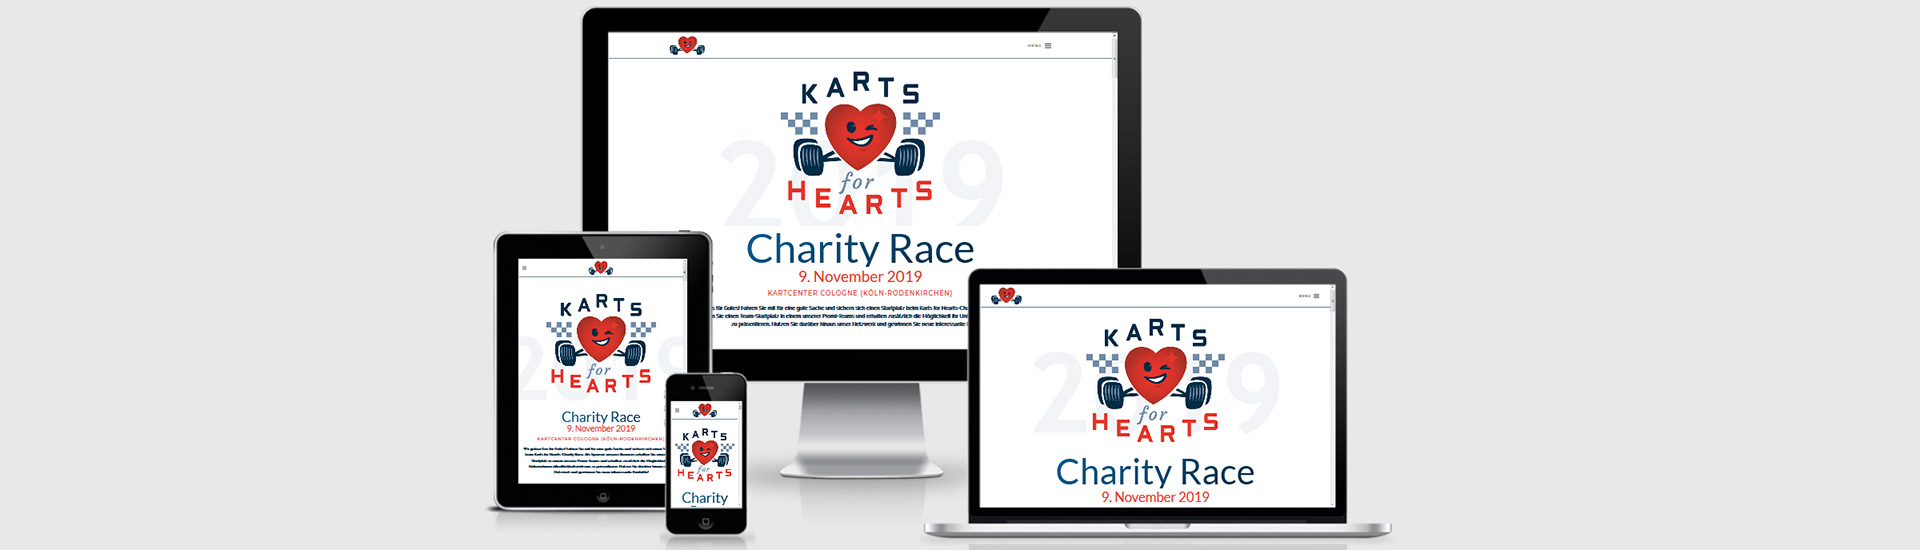 webdesign koeln karts for hearts header01